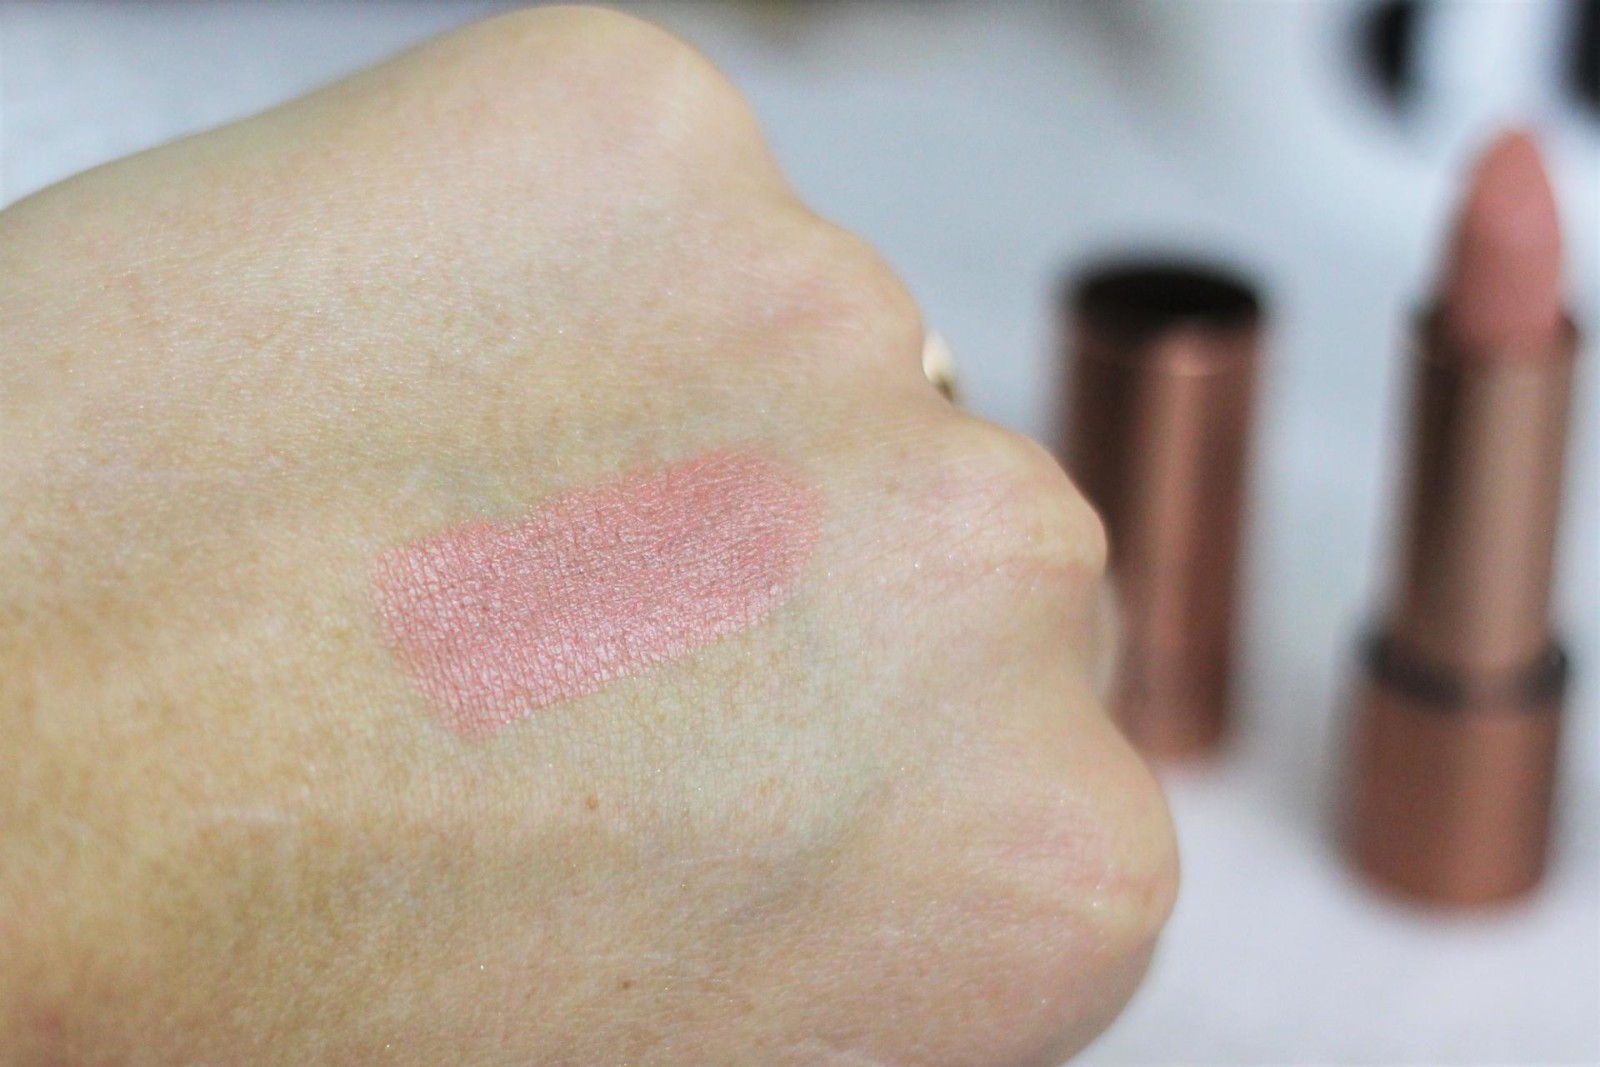 Rosie for Autograph Lipstick Nude Mink